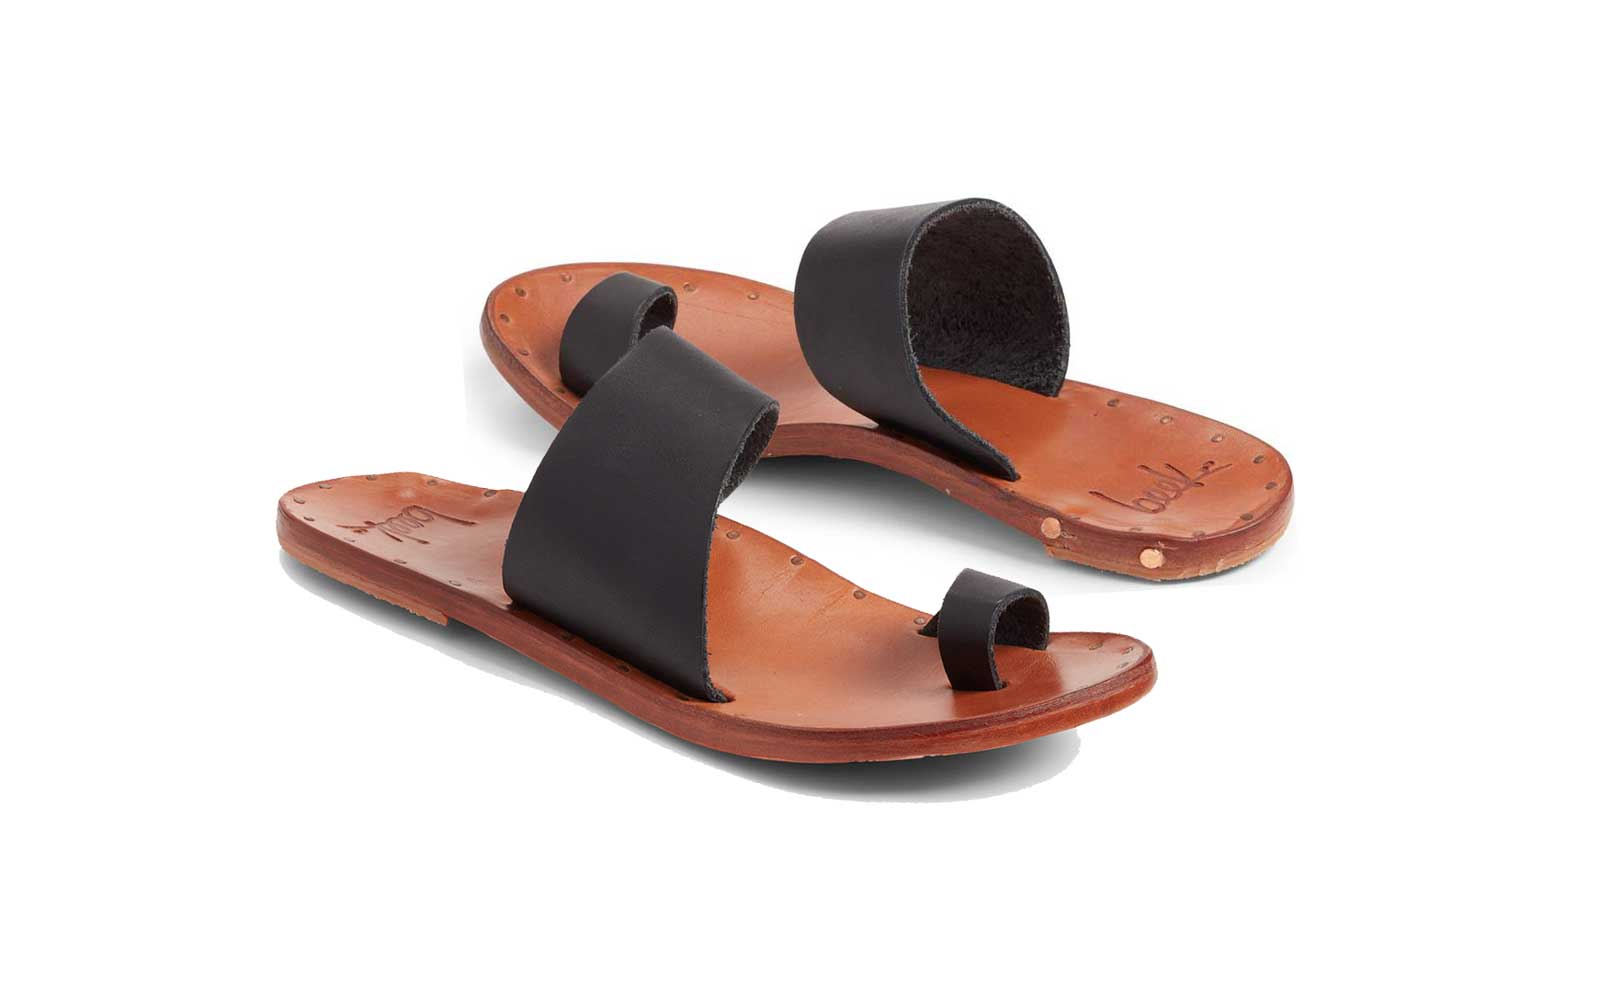 042e966a9ab22 The Most Comfortable Walking Sandals for Women